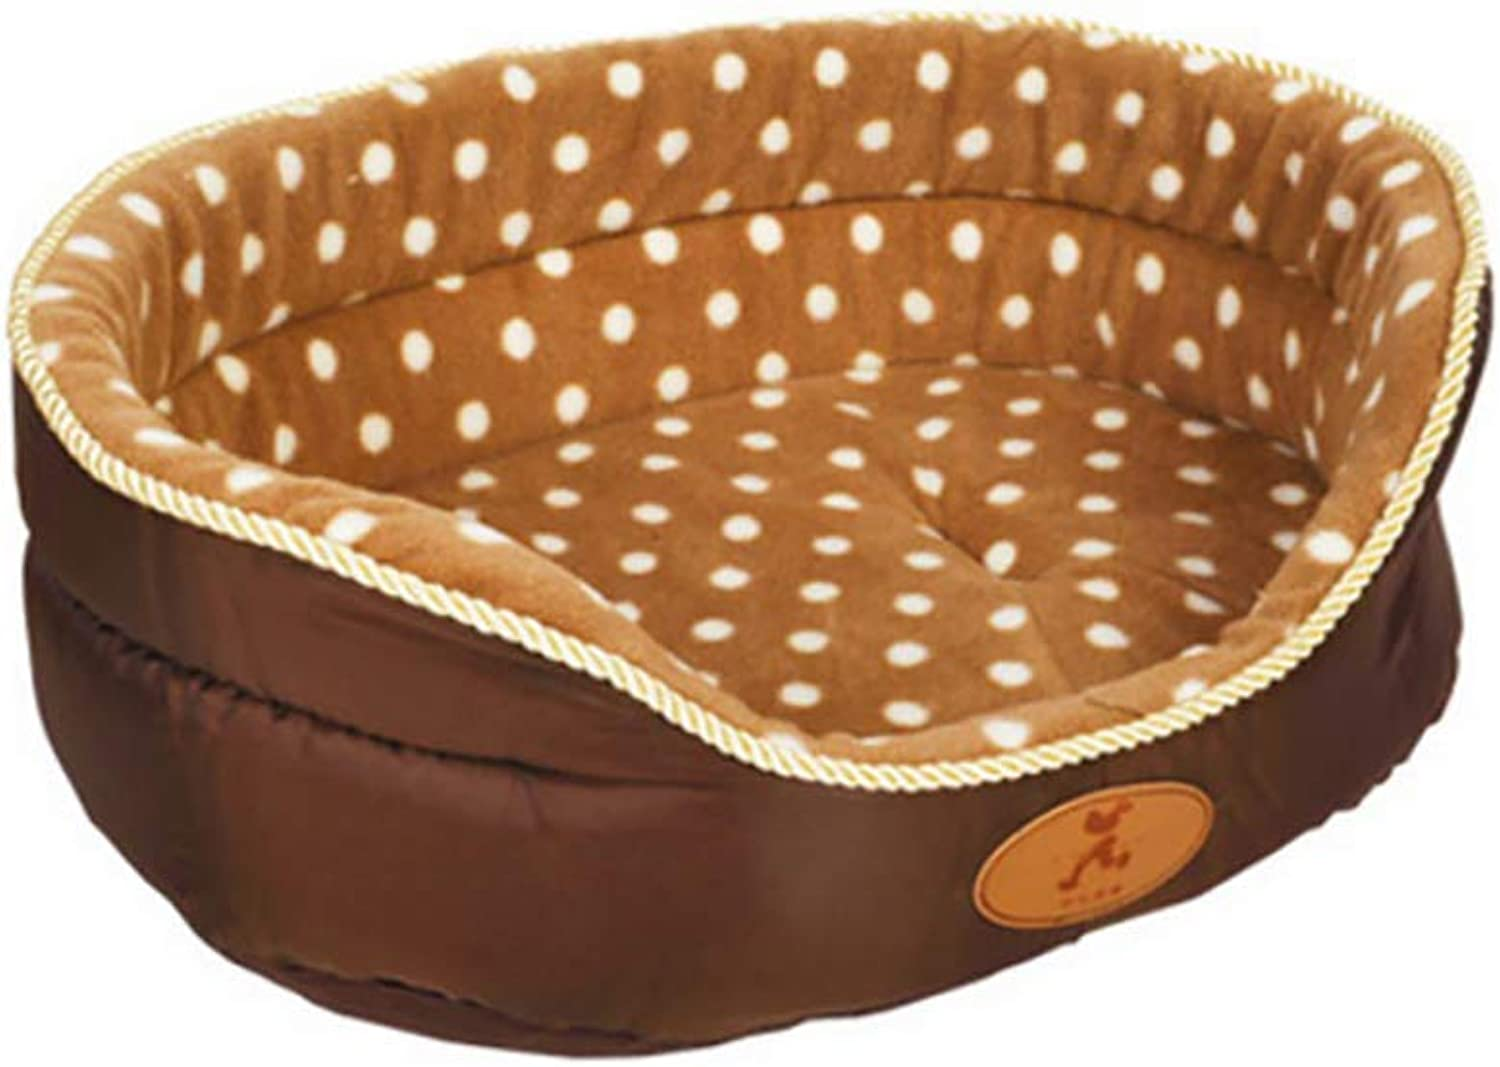 Deluxe Cozy Pet Bed Ultra Soft Comfortable Dog Bed, Washable Short Plush Cushion Warm Luxury Pet Basket,A,S